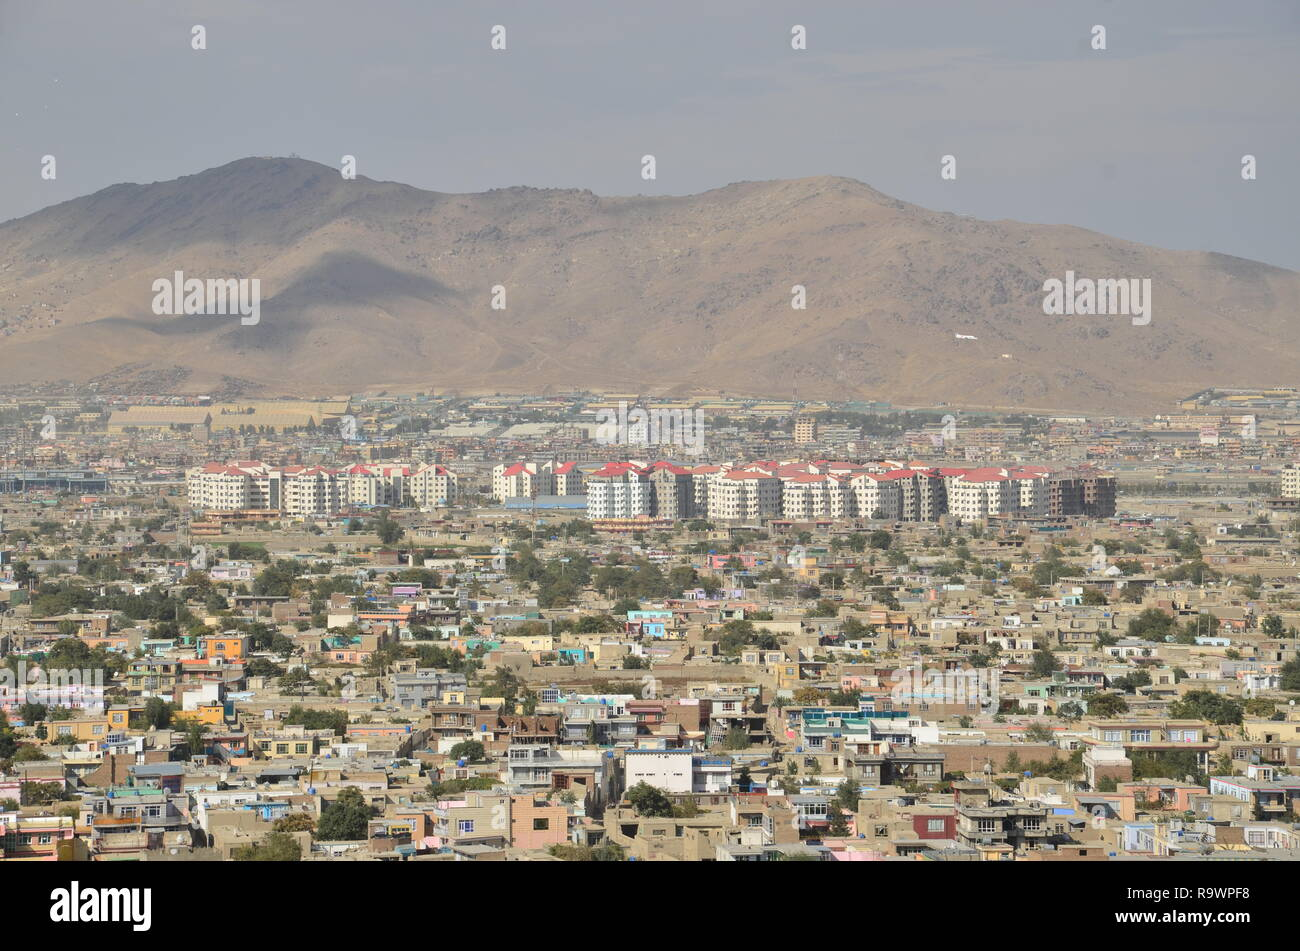 A view of Kabul city, Afghanistan. - Stock Image